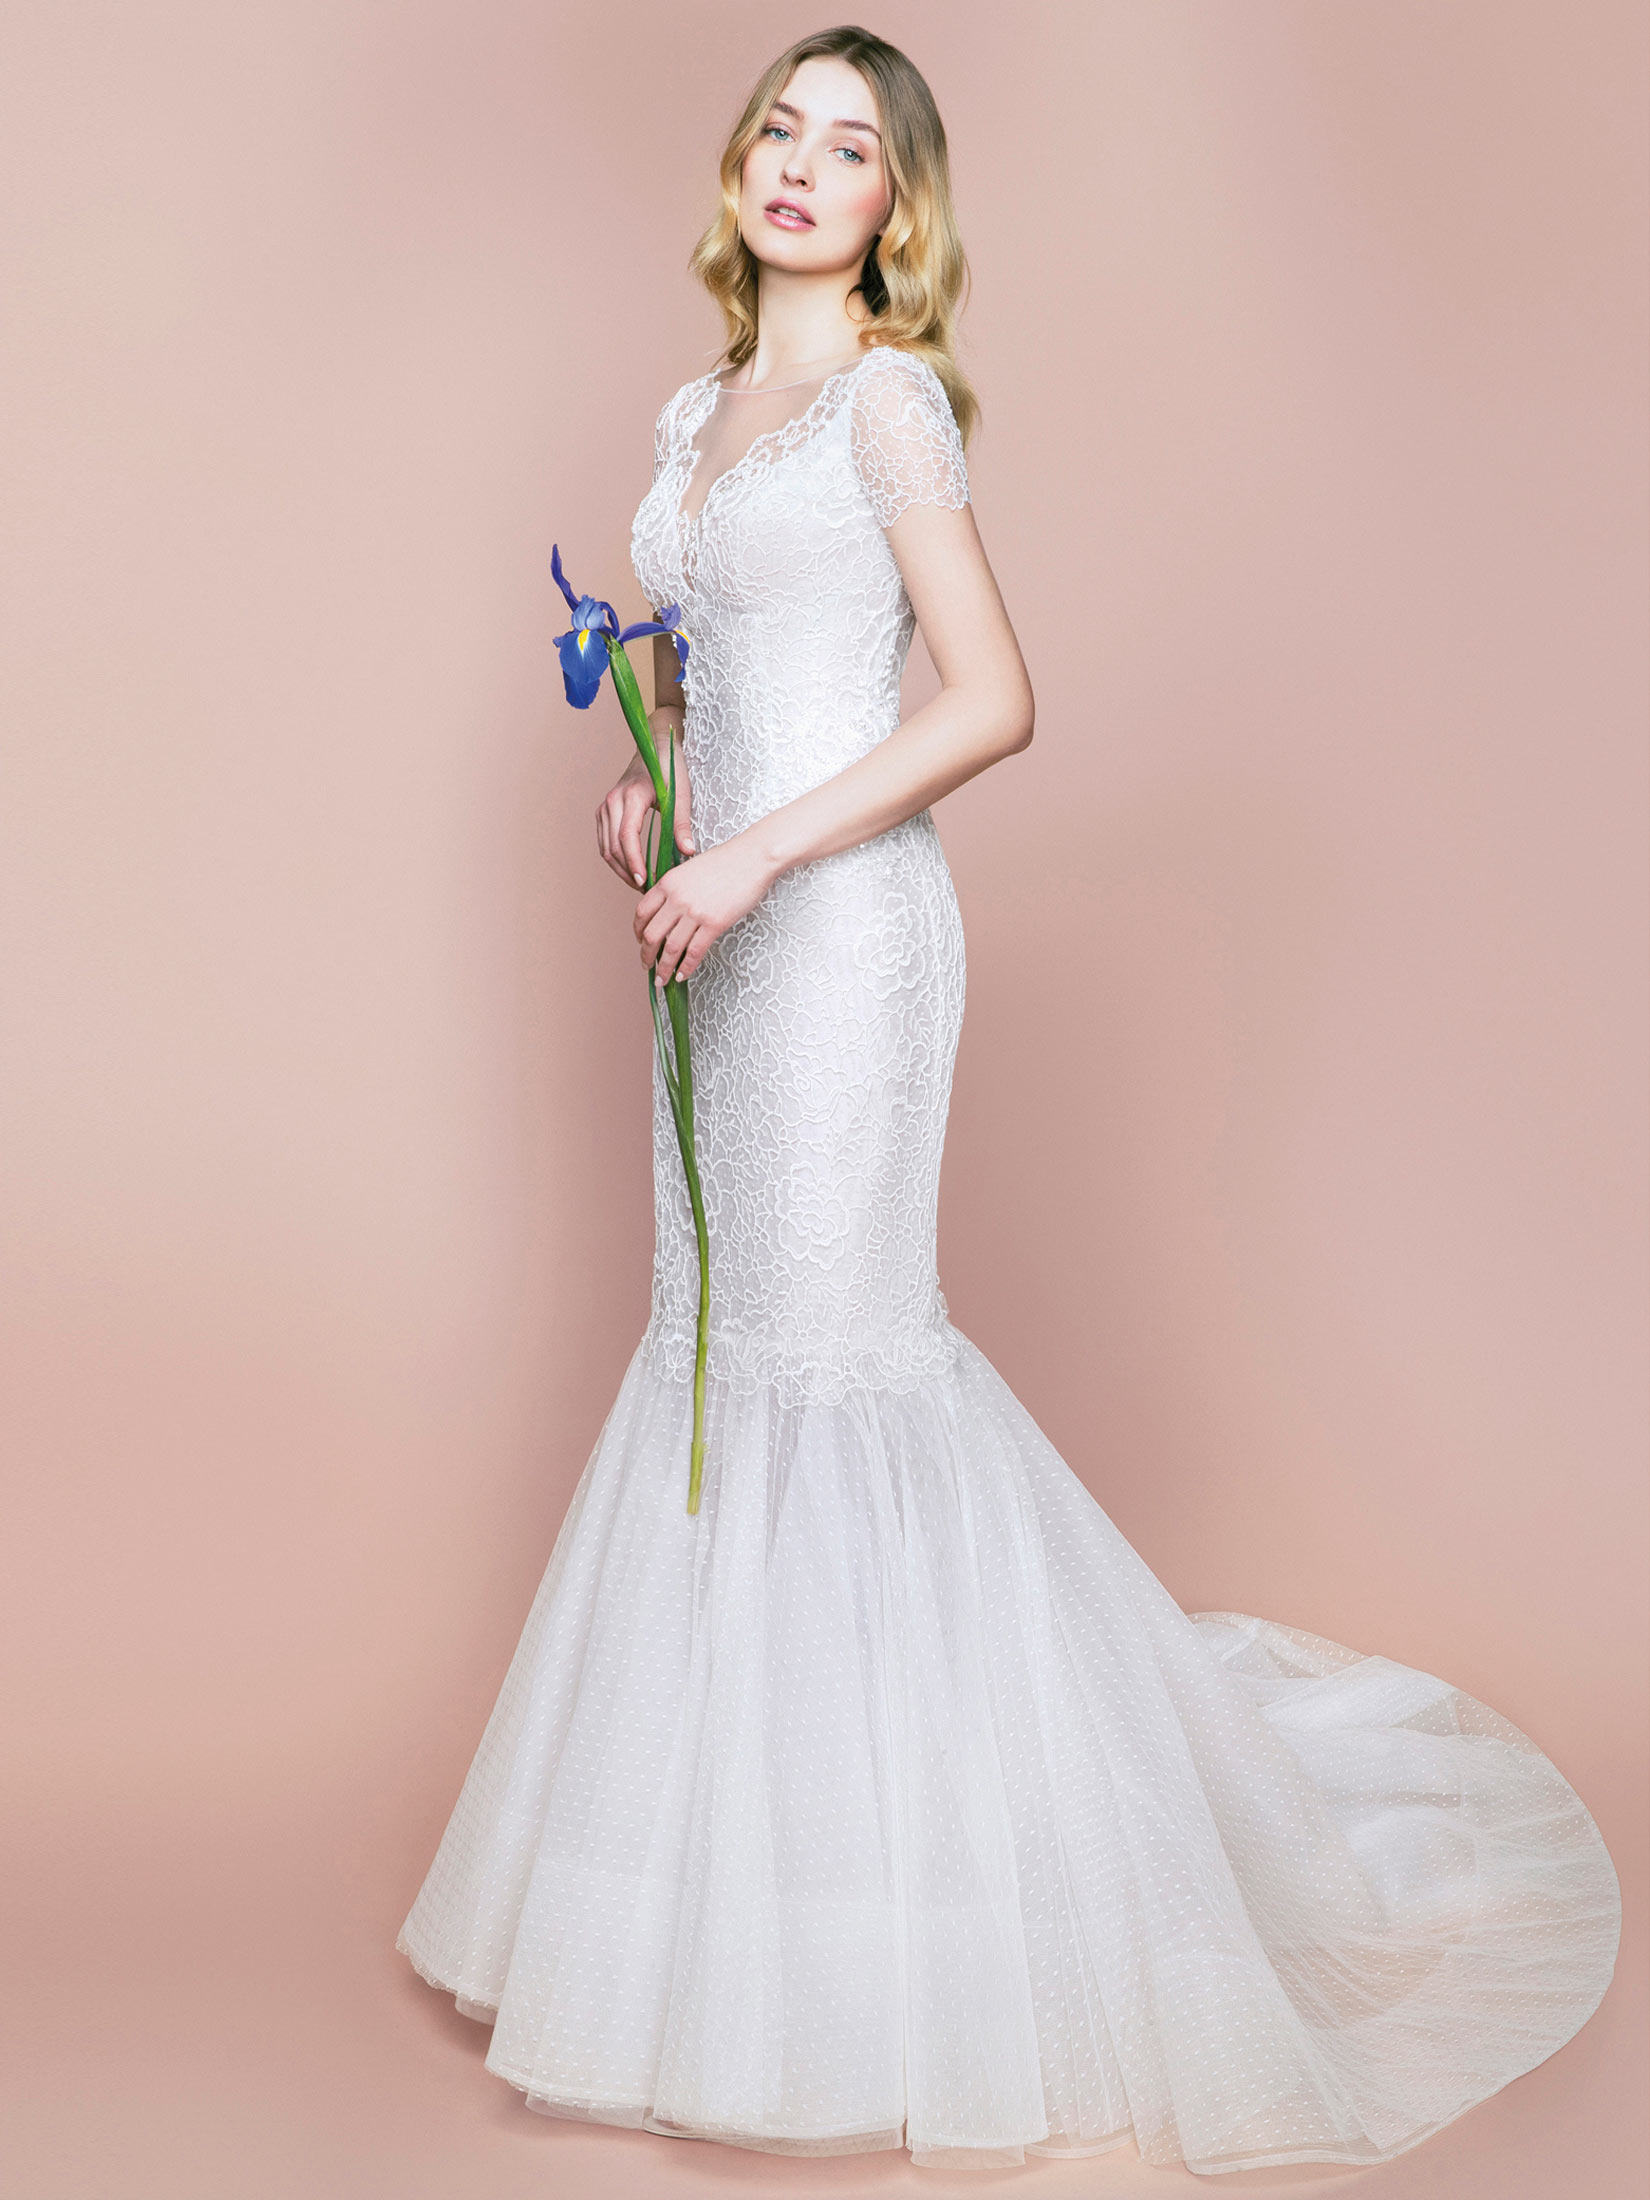 Bridal Collection Online Now | Blumarine ®